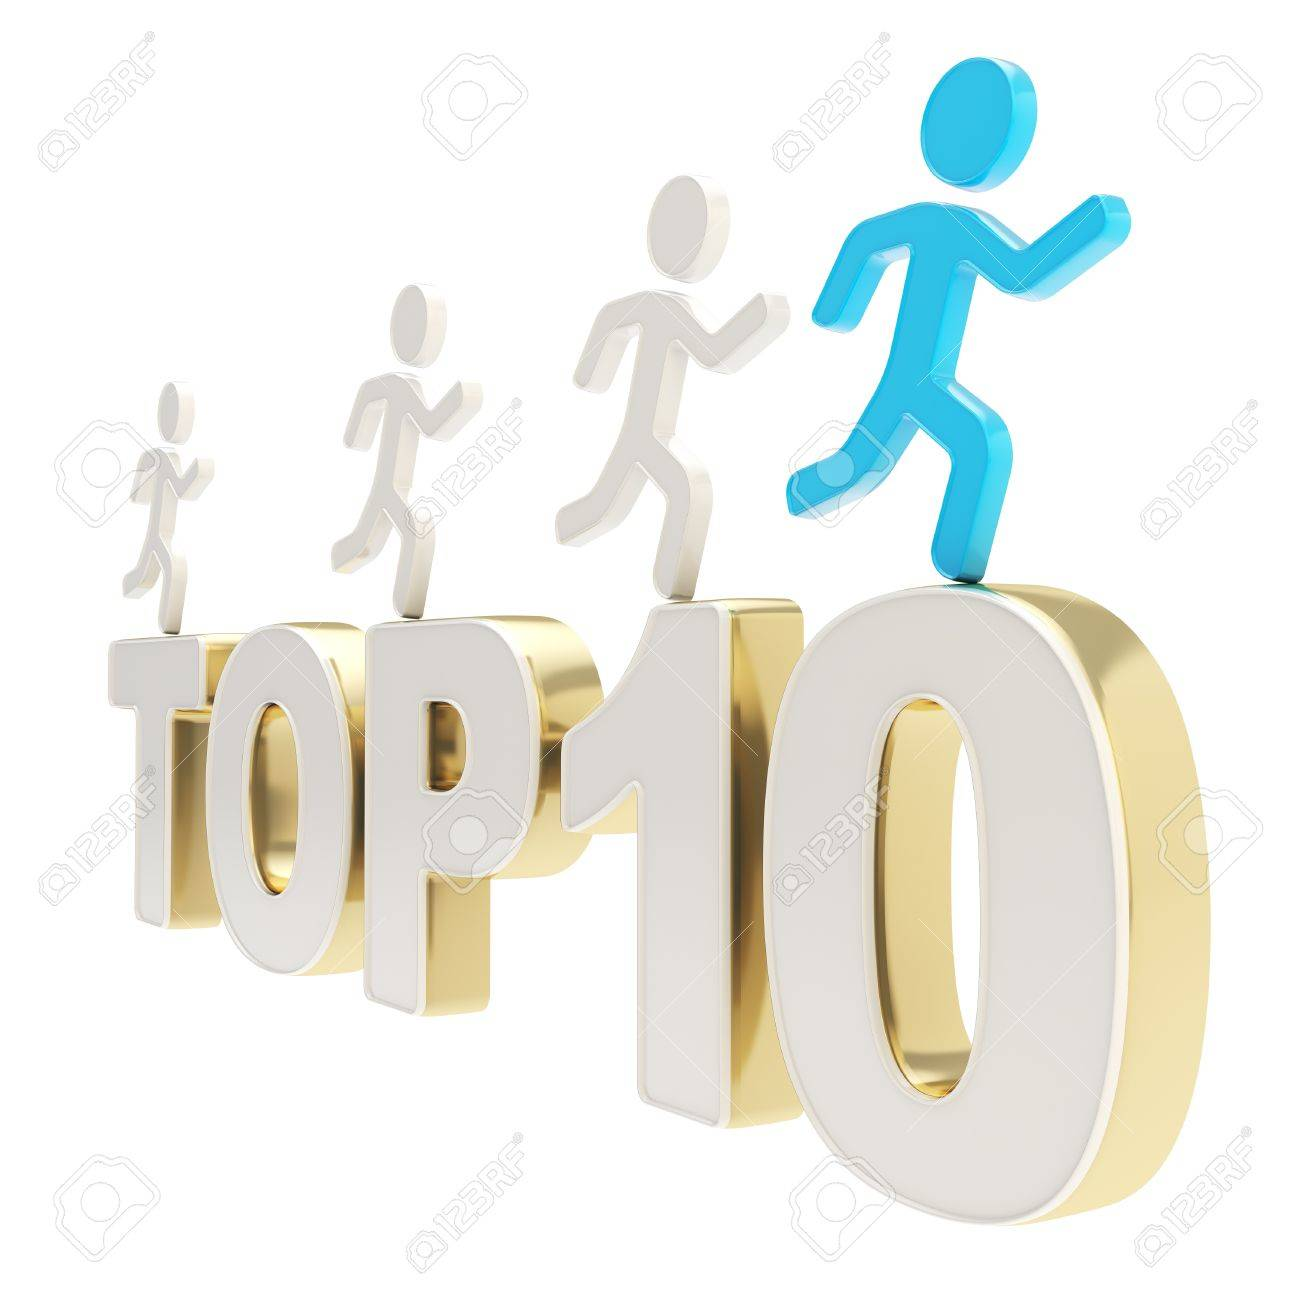 Top ten leaders illustration  group of human symbolic figures running over the golden Top-10 composition isolated on white background Stock Photo - 17226476